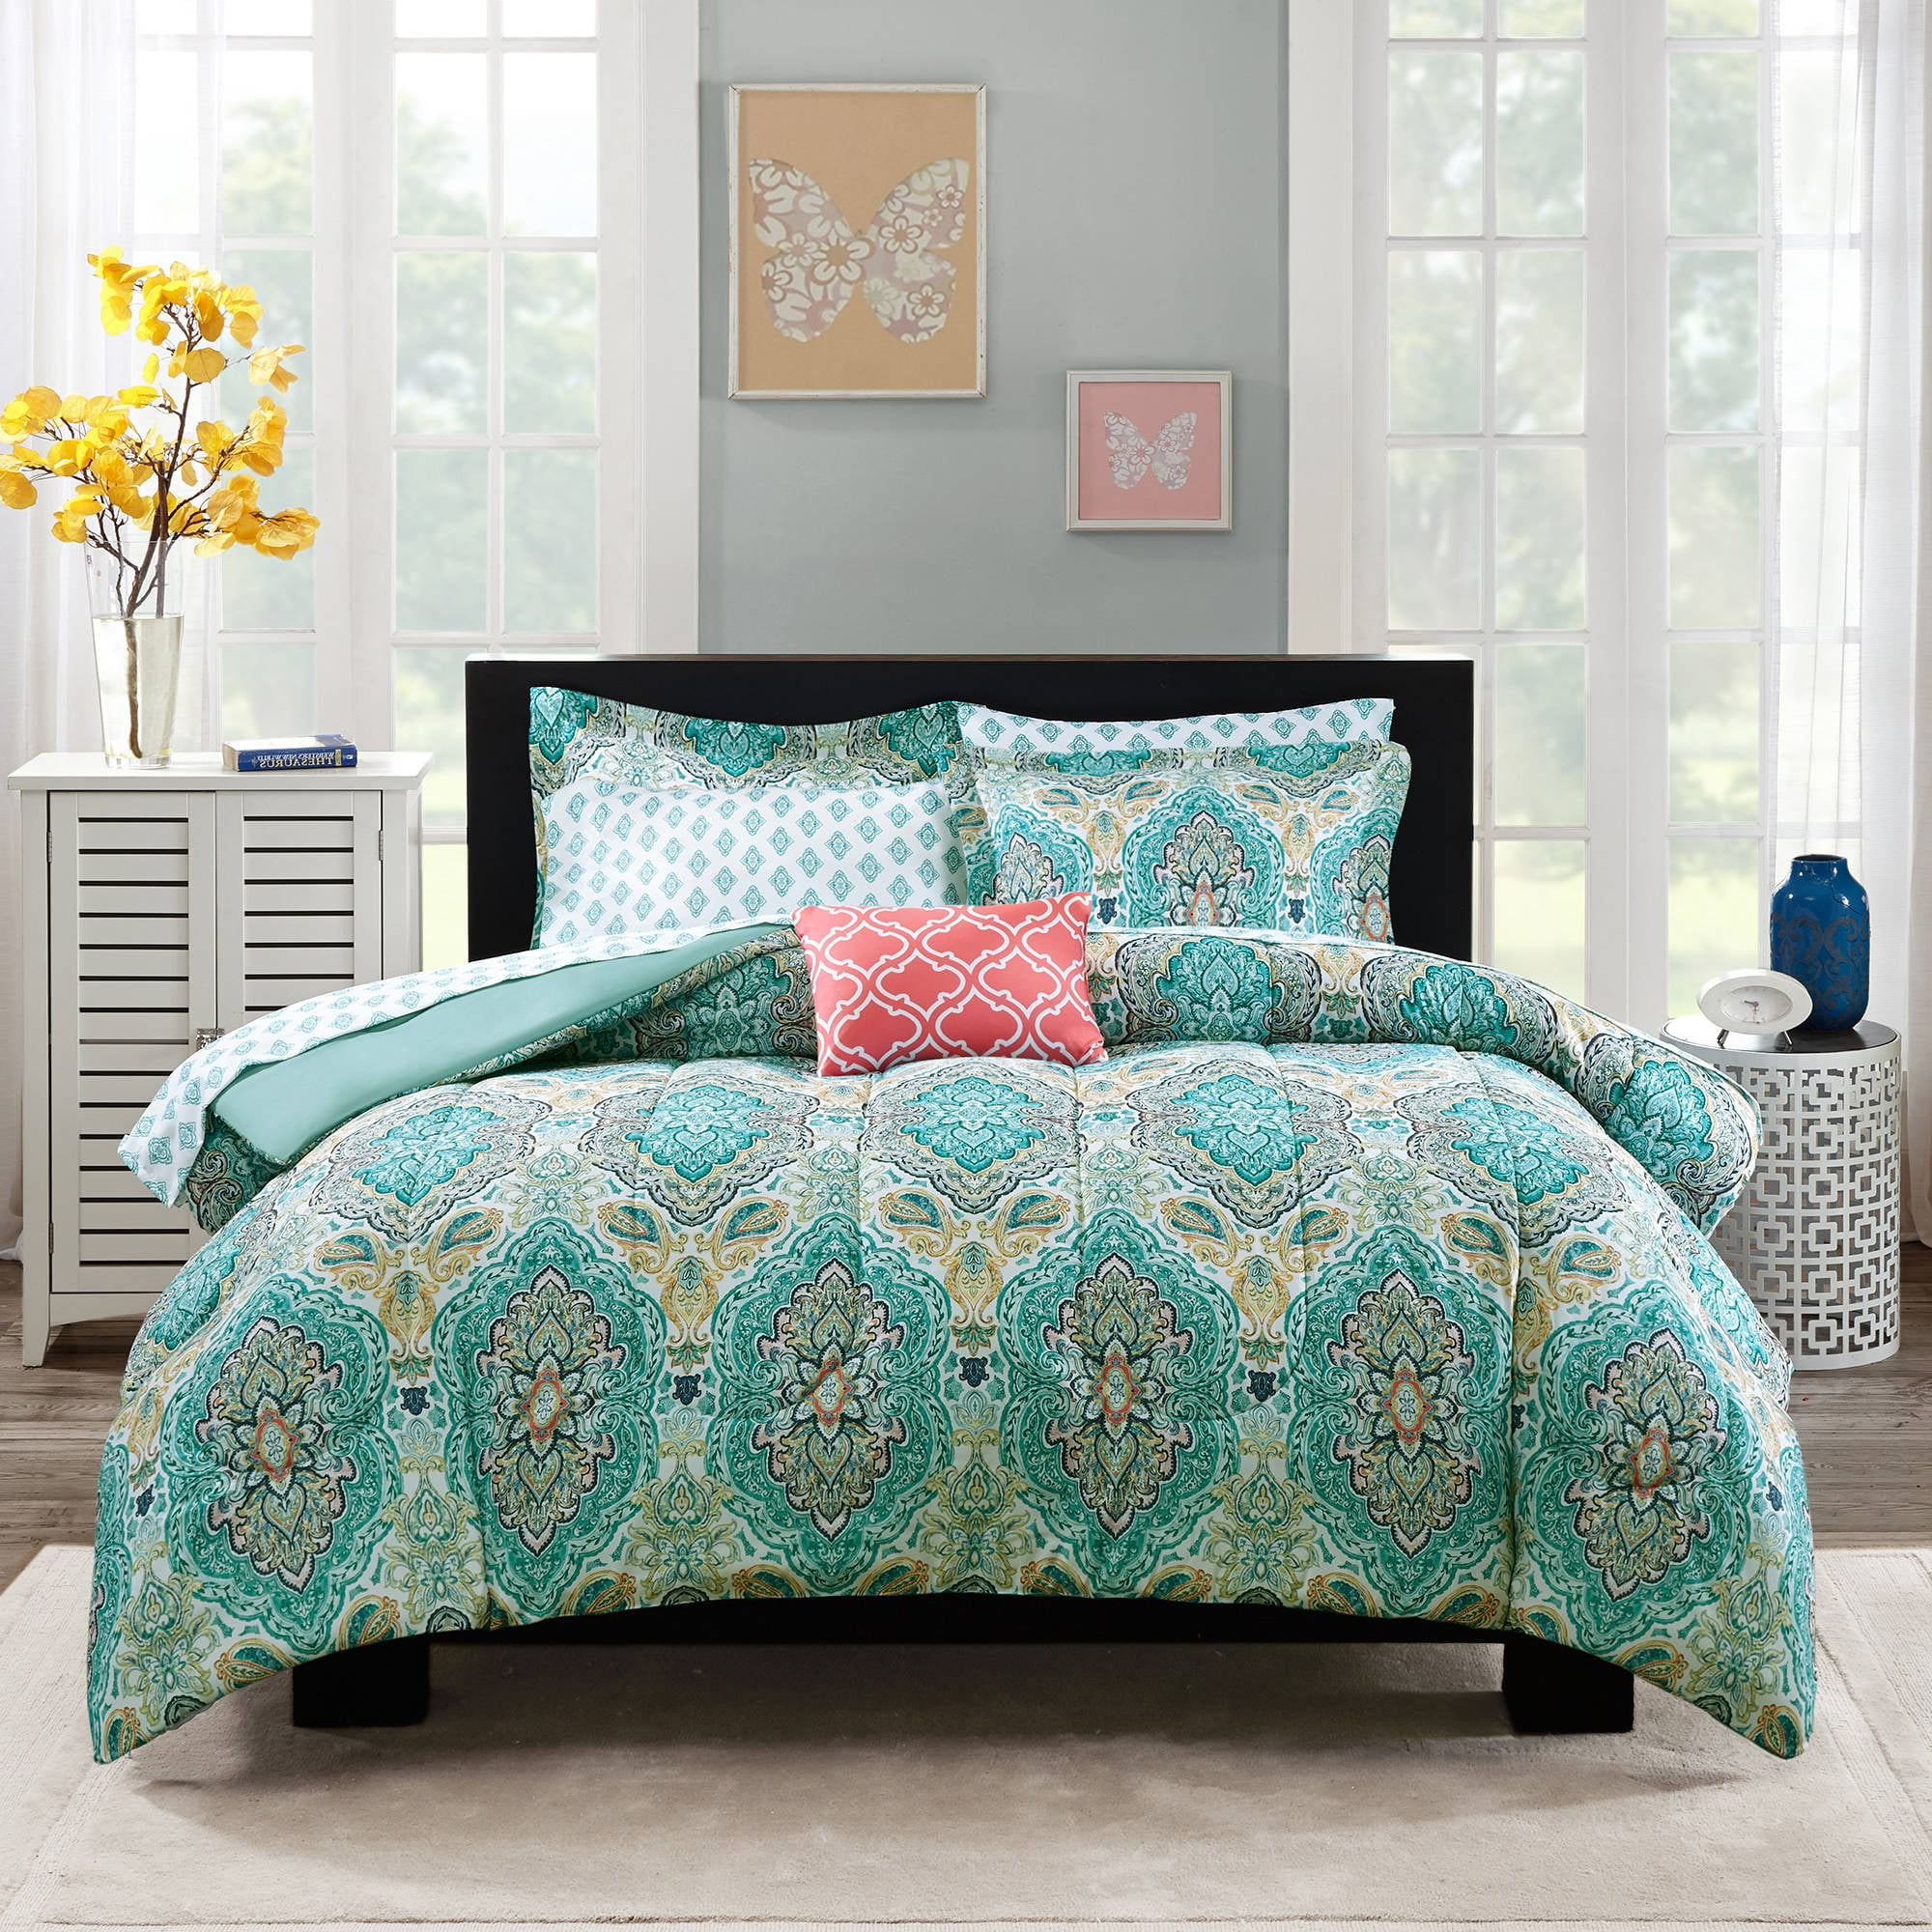 Mainstays Monique Paisley Bed In A Bag Comforter Set Twin